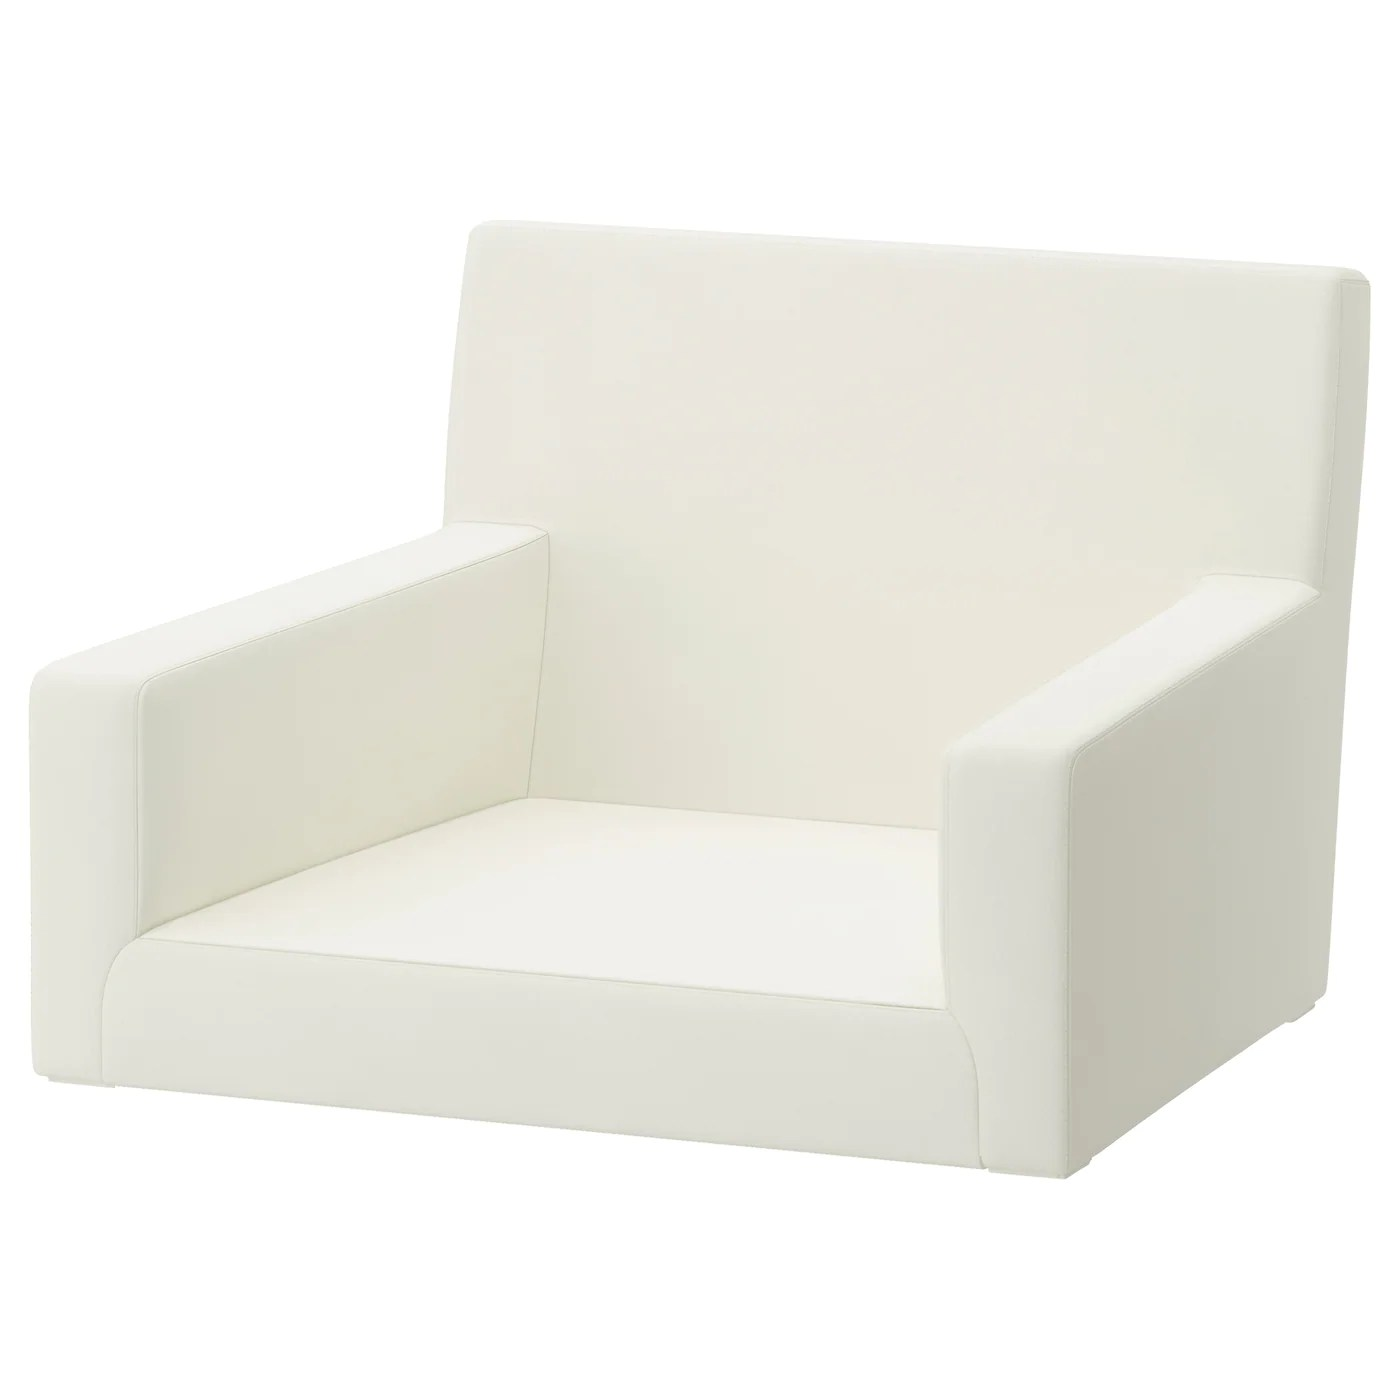 washing ikea chair covers upholstered dining chairs uk dublin ireland